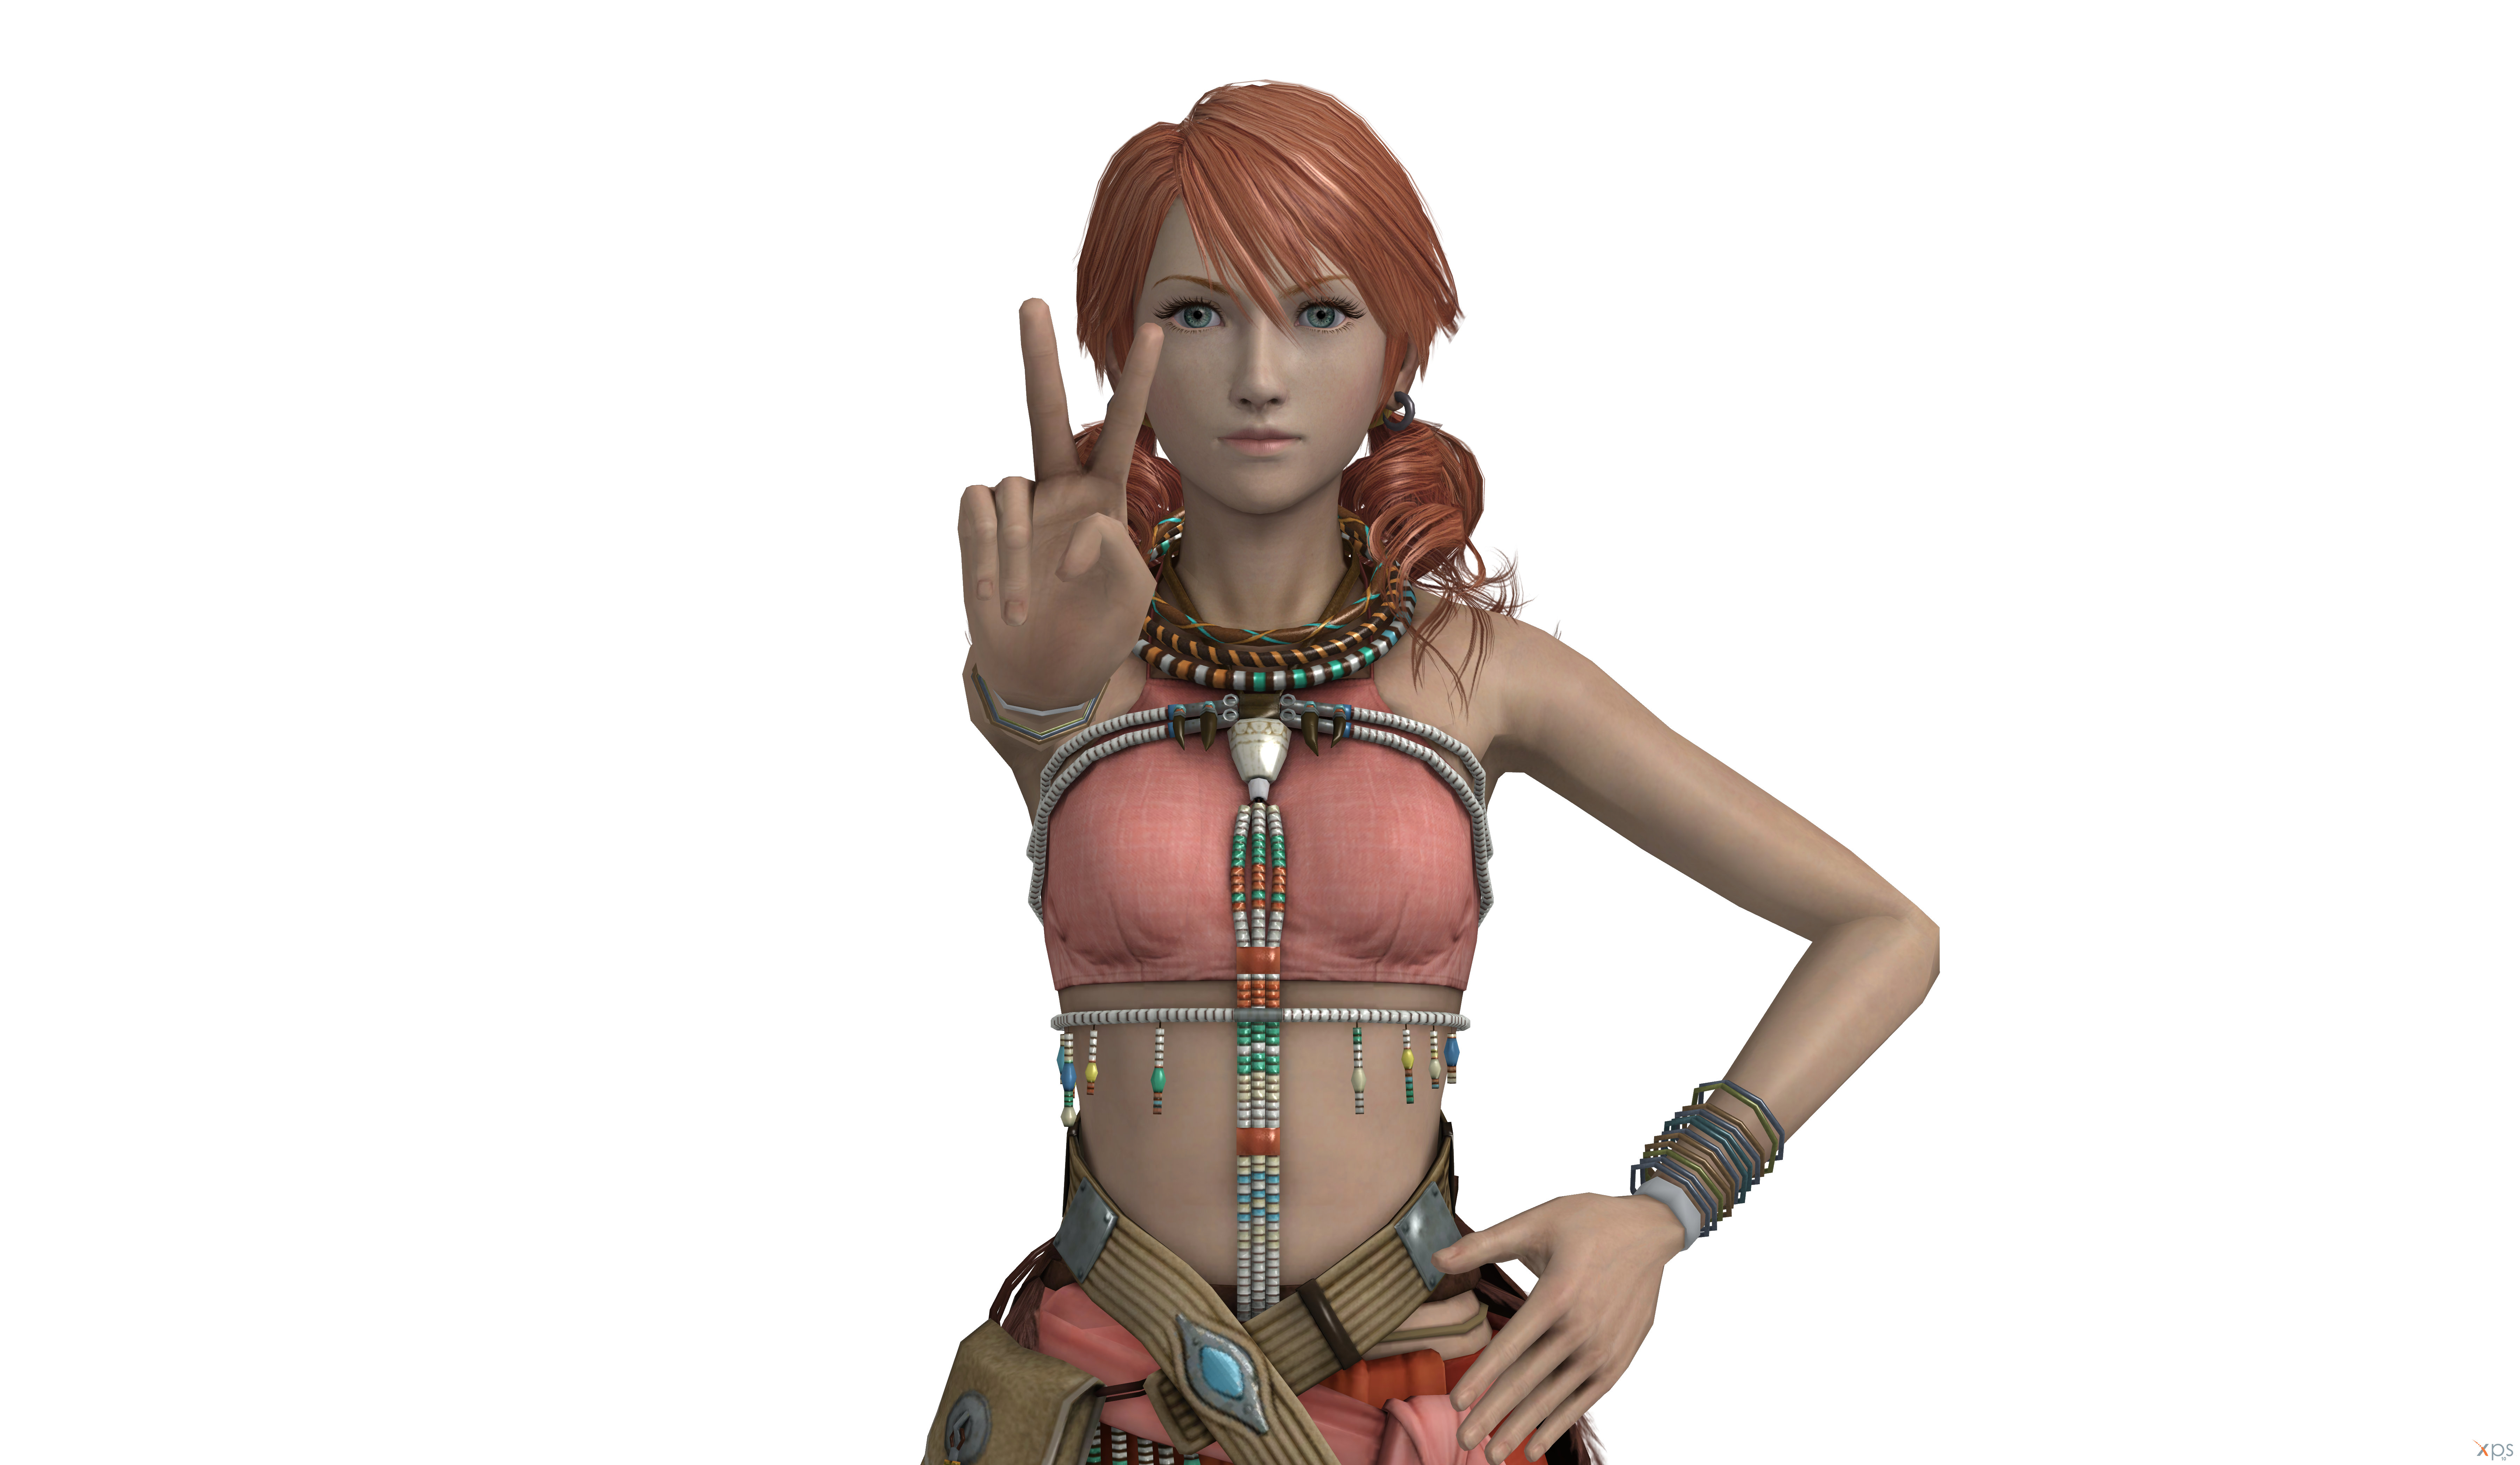 Final fantasy xiii vanille render 1 by silvermooncrystal on deviantart silvermooncrystal final fantasy xiii vanille render 1 by silvermooncrystal voltagebd Image collections